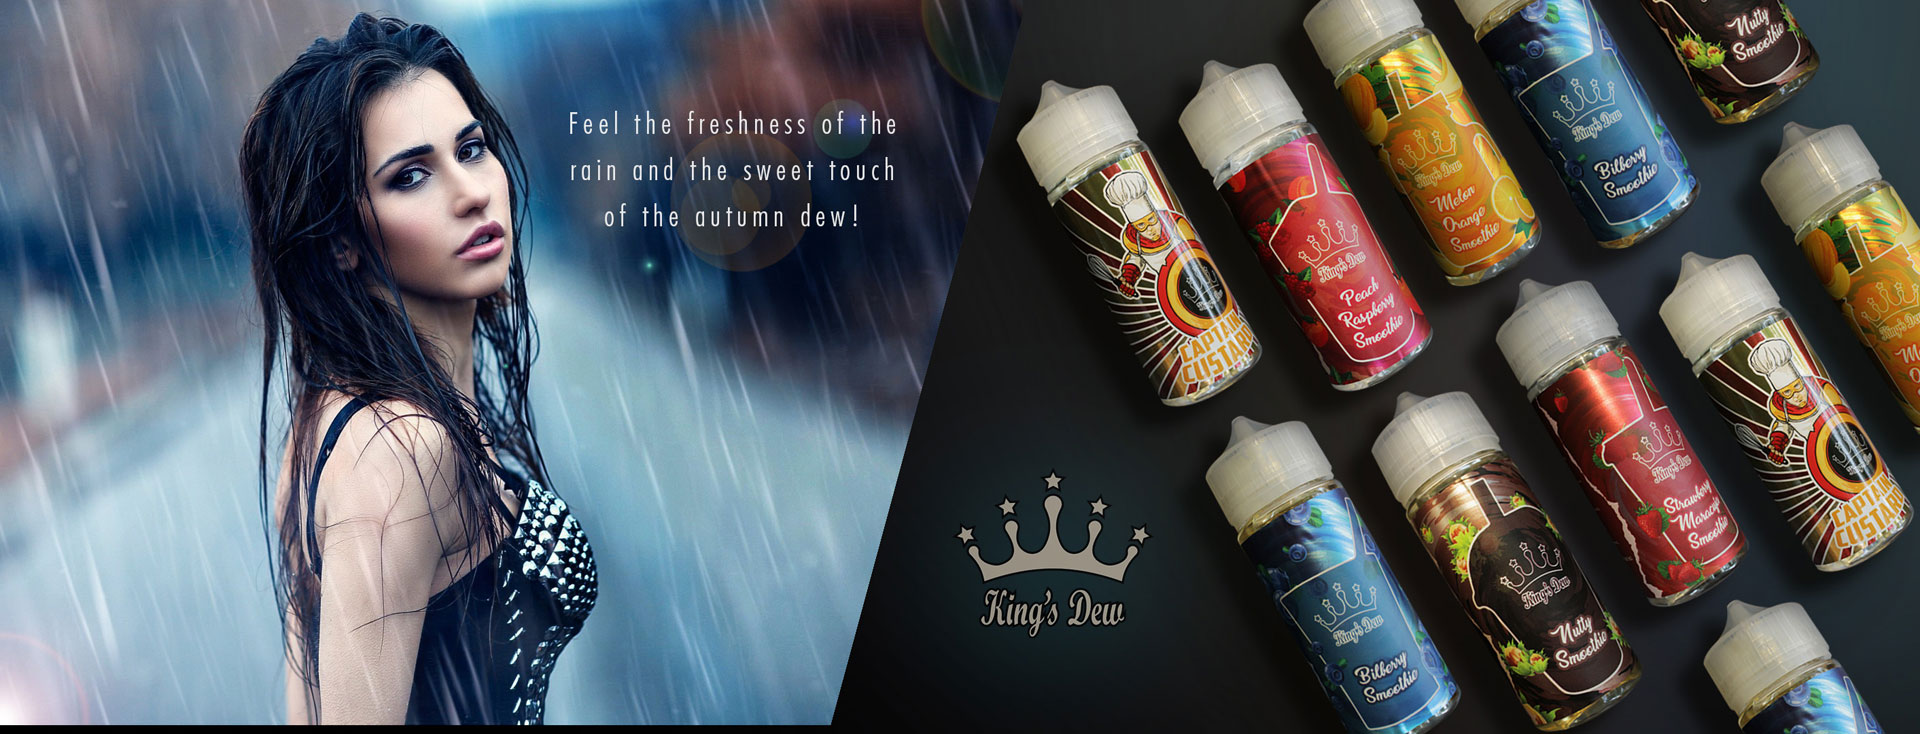 kings dew banner tigara electronica vaperia